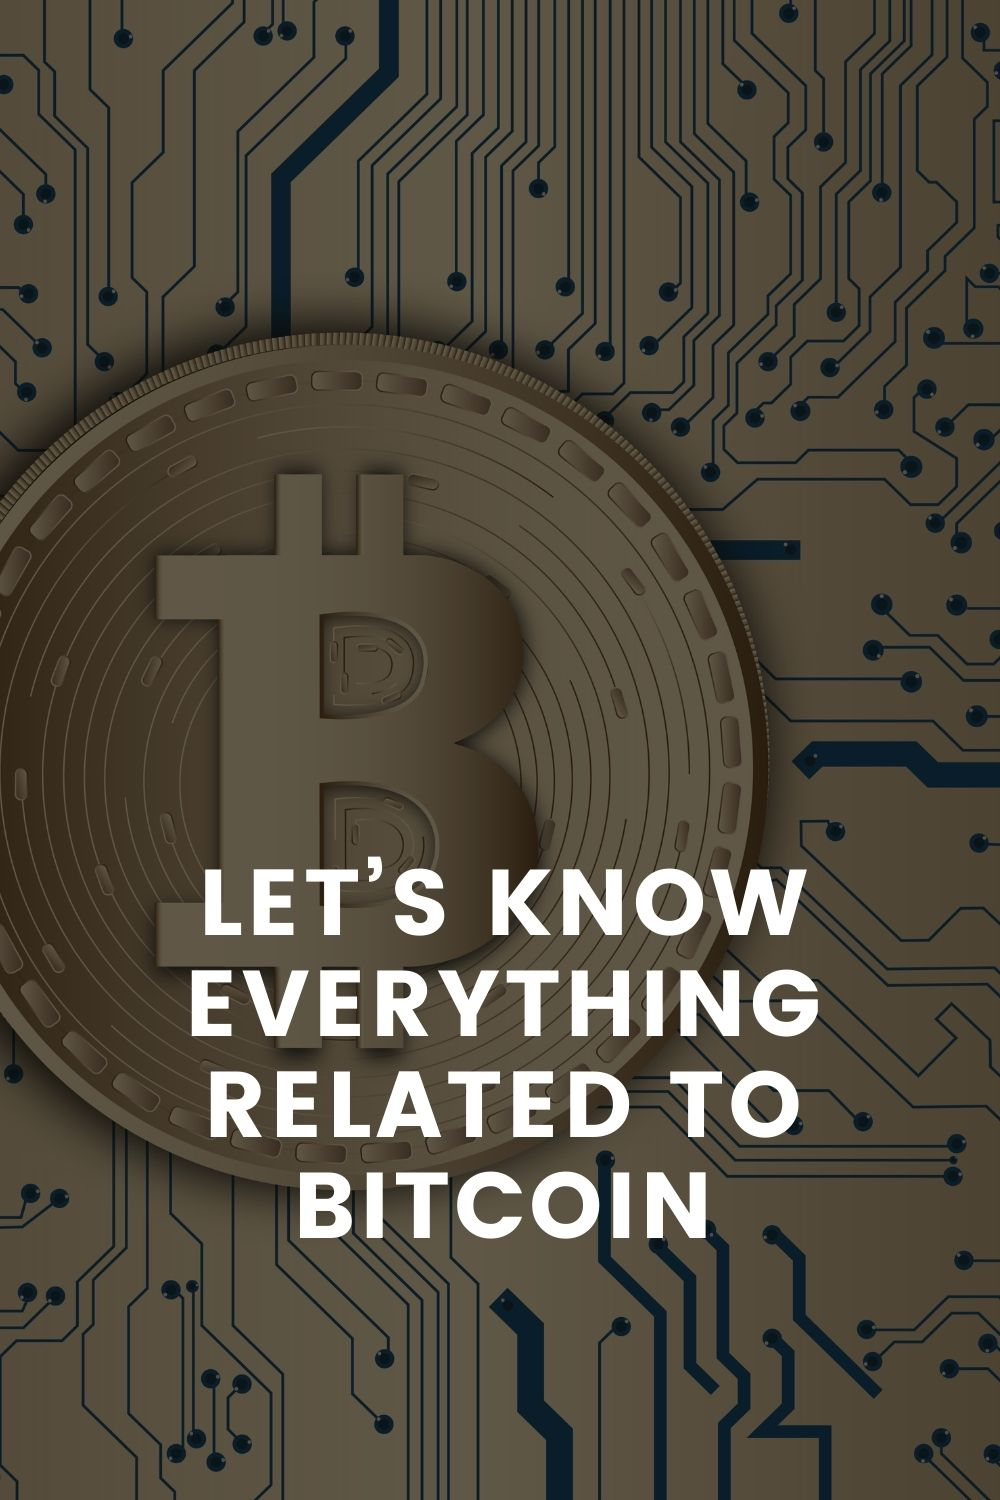 Let's Know Everything Related To Bitcoin